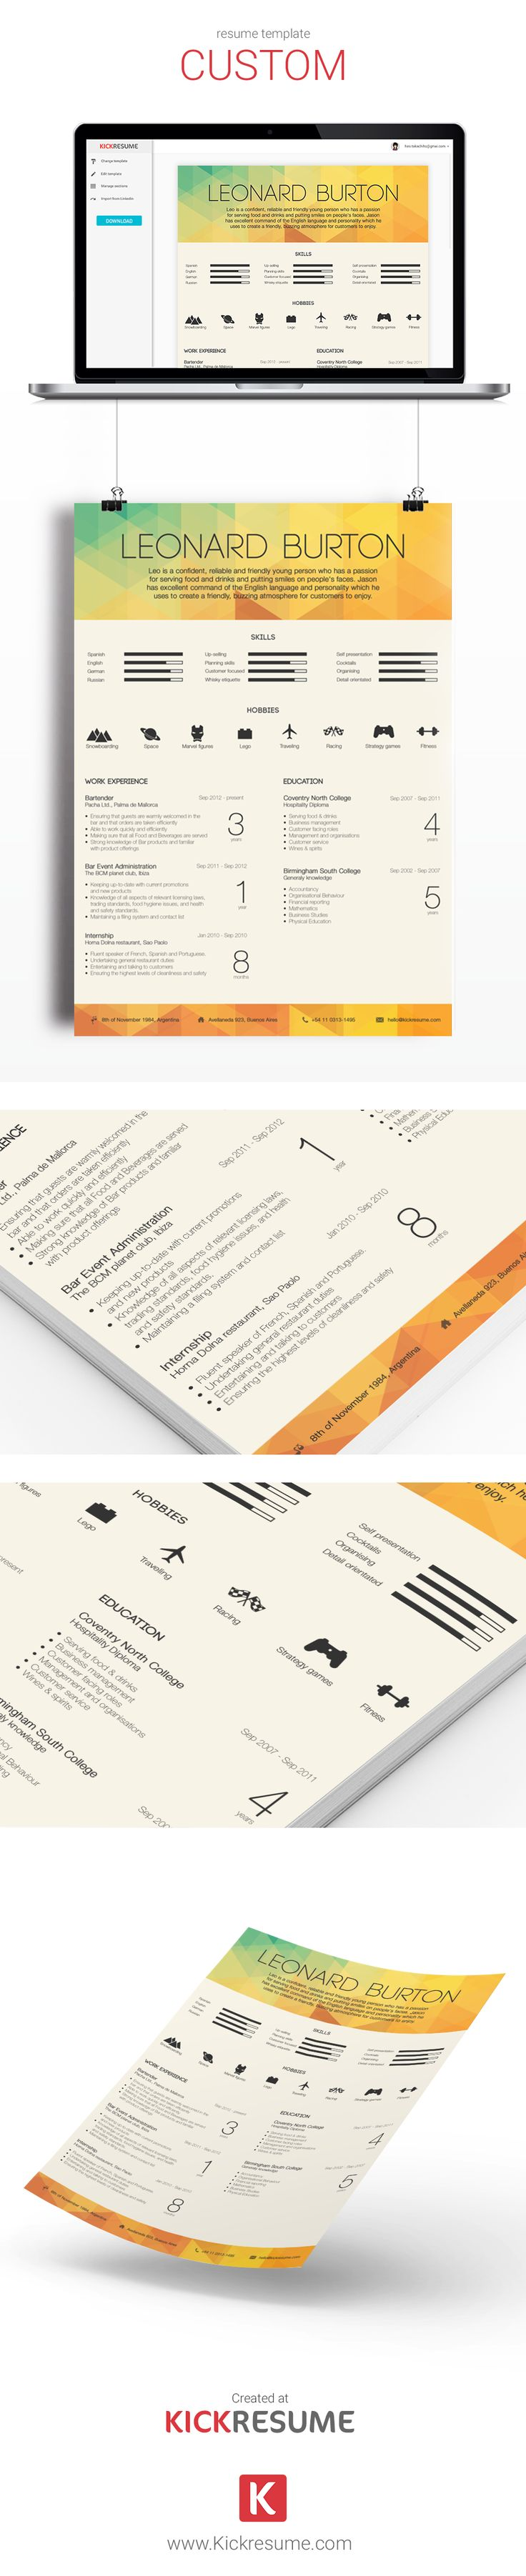 best ideas about sample resume templates resume choose one of our templates created by designers and approved by recruiters resume sample resume template resume design creative resume resume